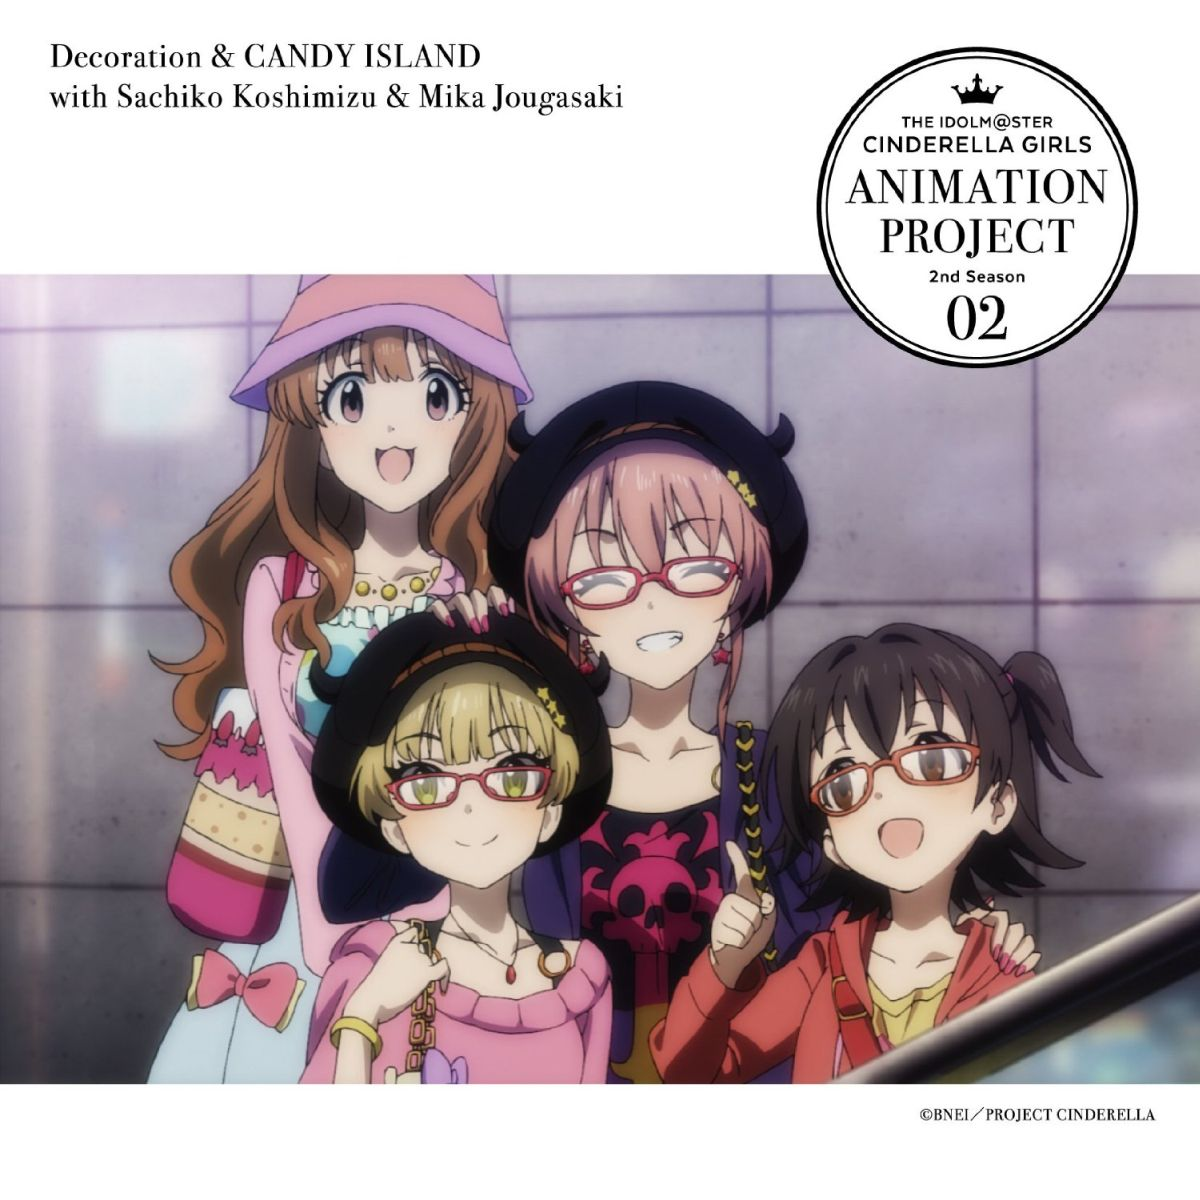 THE IDOLM@STER CINDERELLA GIRLS ANIMATION PROJECT 2nd Season 02画像